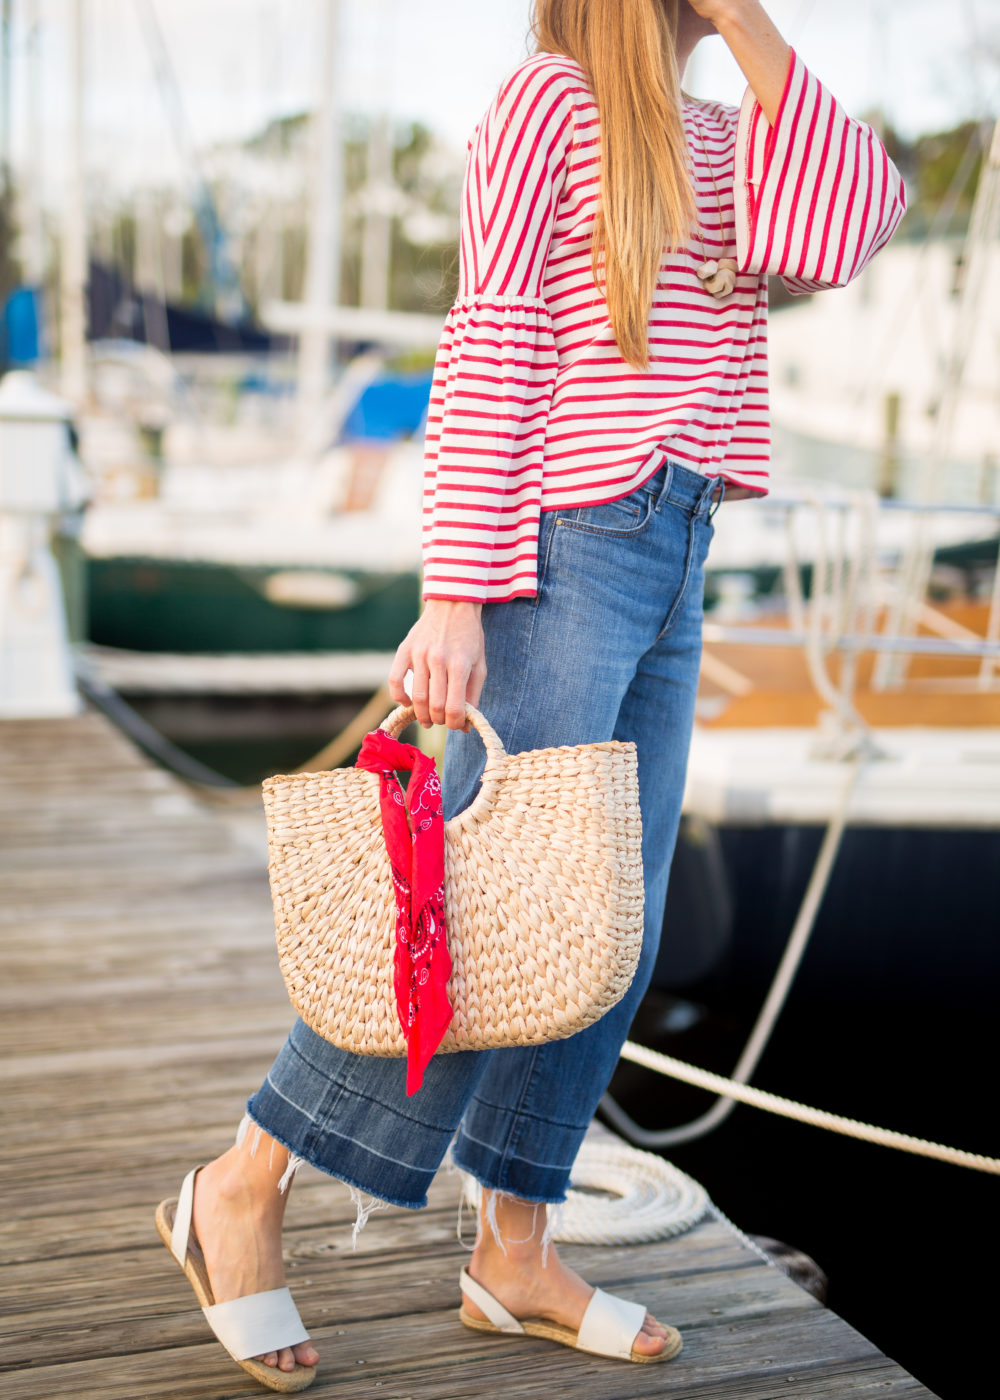 How to Dress Preppy on a Budget / Preppy Women's Outfits / Spring Outfits Preppy / Preppy Outfits Summer / Preppy Essentials / Red Striped Top / Where to Buy Preppy Clothes / Straw Bag / Second Hand Preppy Clothes -Sunshine Style, A Florida Fashion and Lifestyle Blog